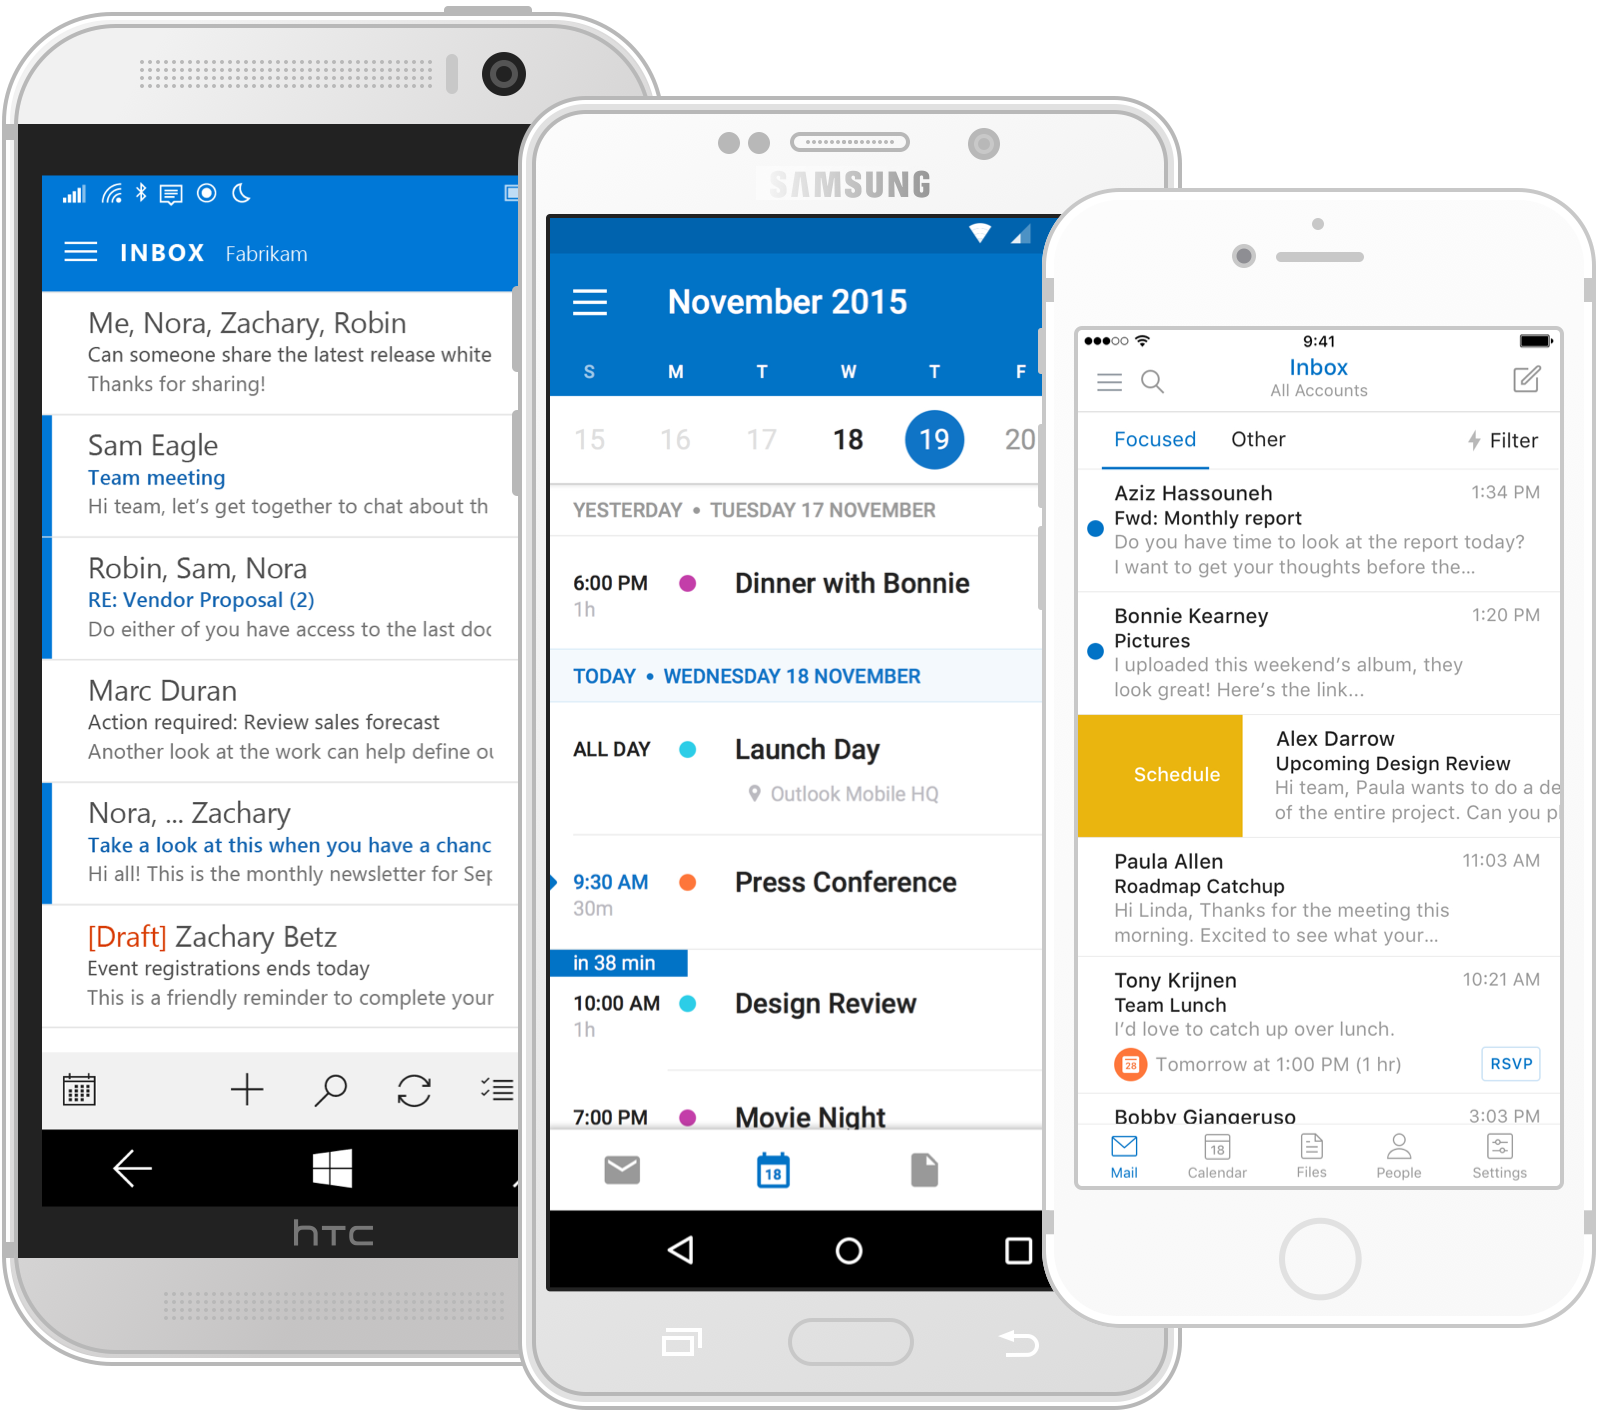 How to make an email account no phone number - Outlook Mobile Is Available On Windows Phone Iphones And Android Devices